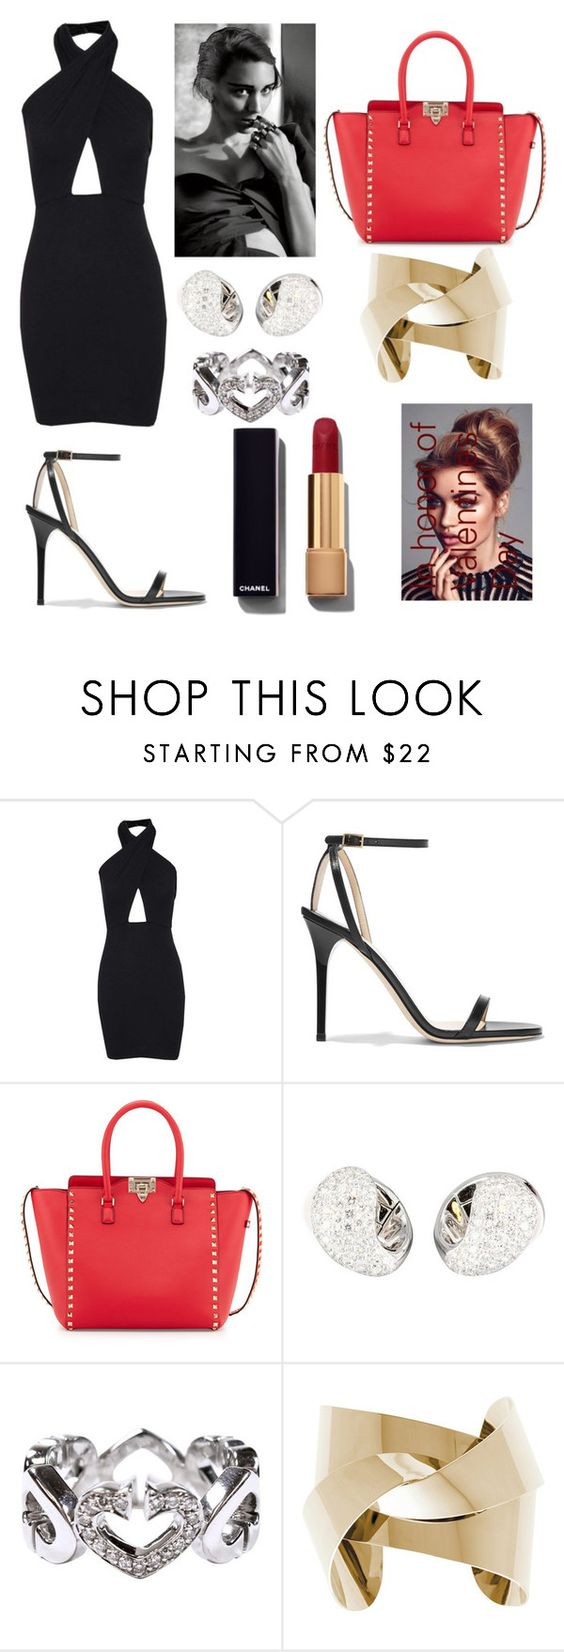 """Darling you are gorgeous"" by polysetter-862 ❤ liked on Polyvore featuring Jimmy Choo, Valentino, Cartier, Chanel, women's clothing, women, female, woman, misses and juniors"